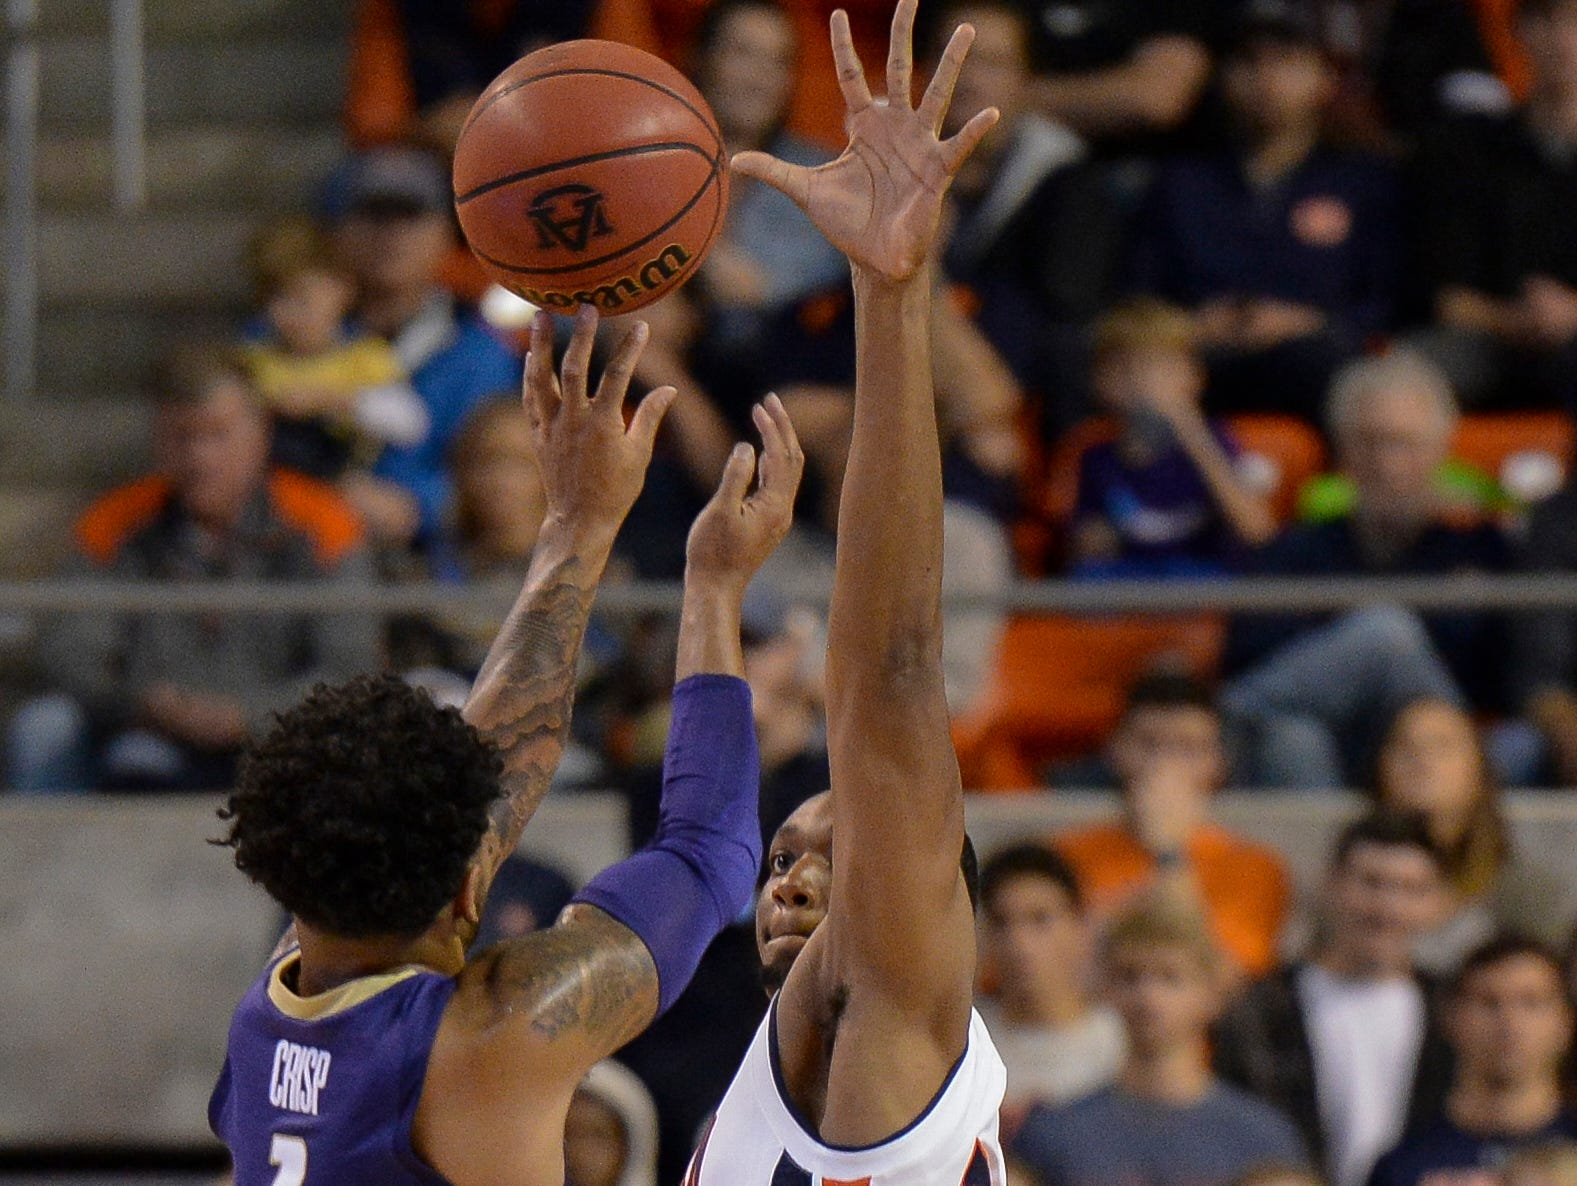 Nov 9, 2018; Auburn, AL, USA; Auburn Tigers center Austin Wiley (50) defends a shot by Washington Huskies guard David Crisp (1) at Auburn Arena. Mandatory Credit: Julie Bennett-USA TODAY Sports